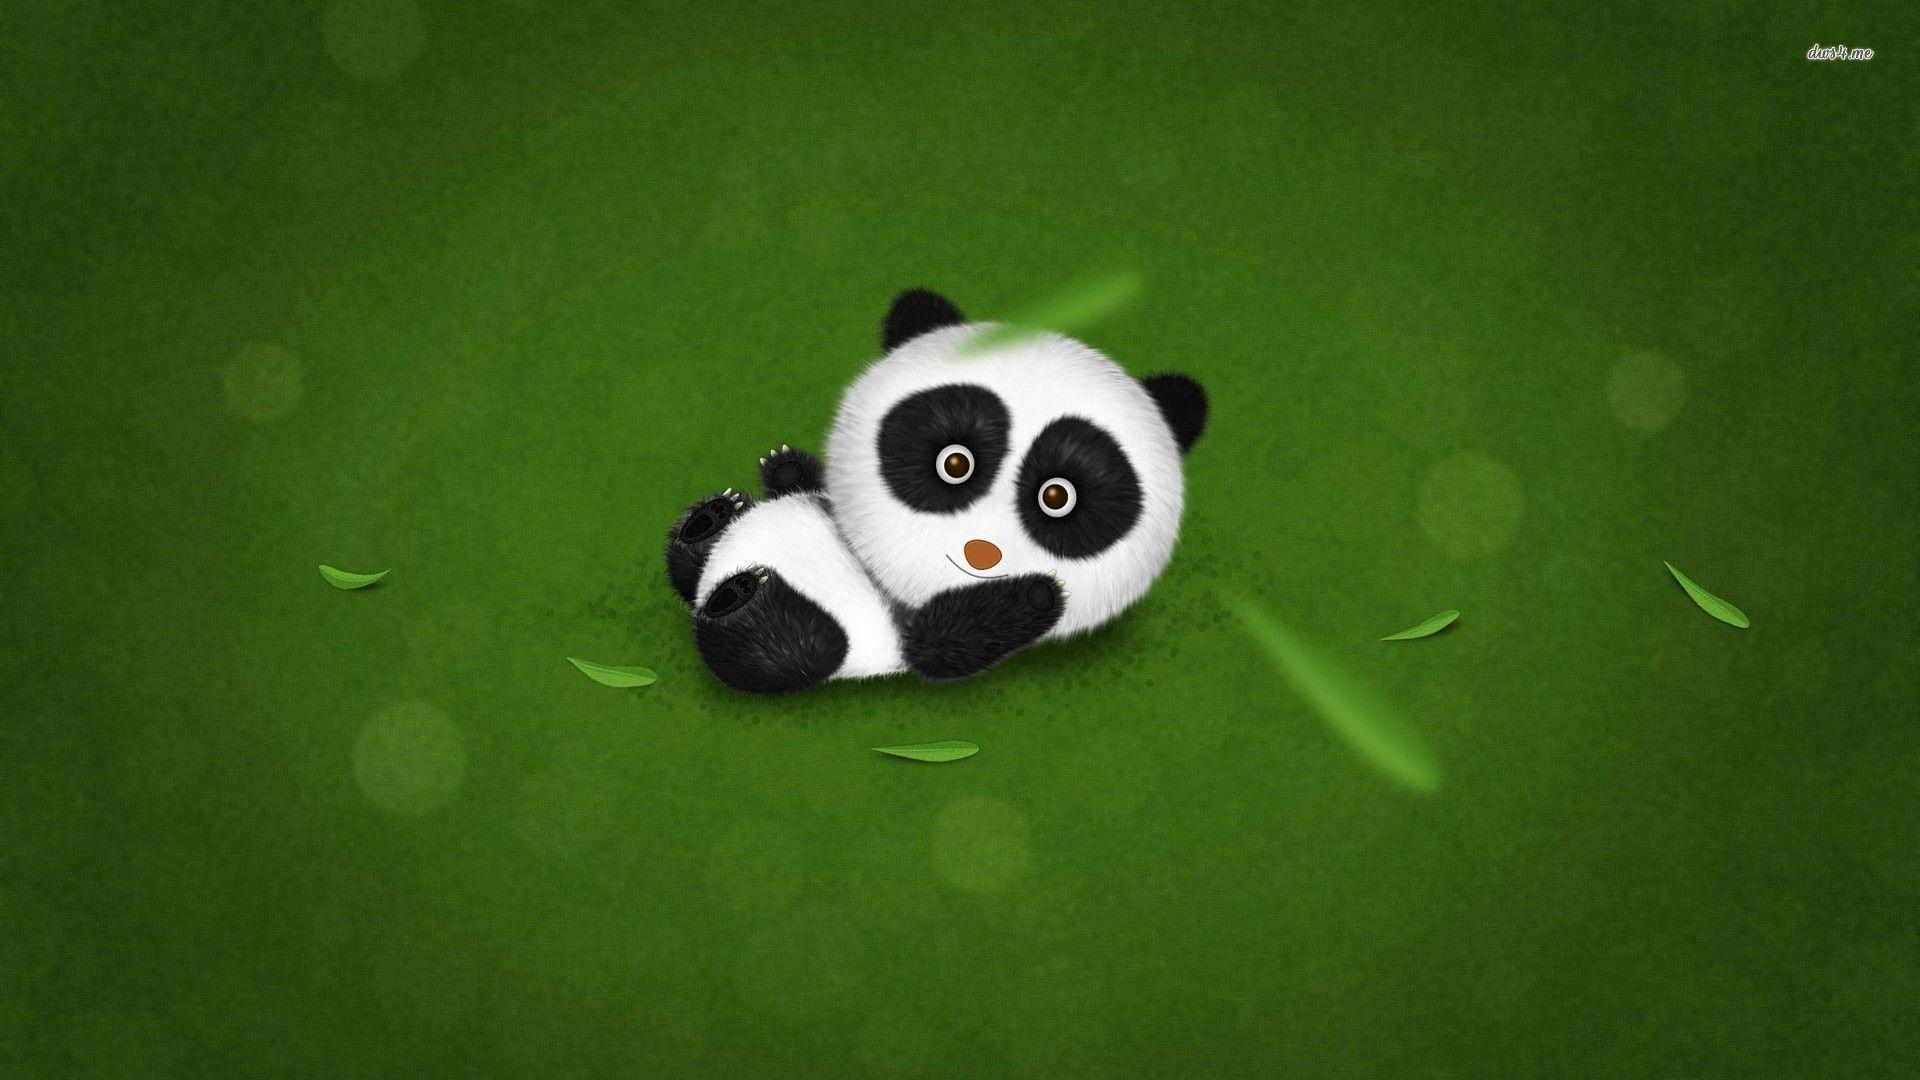 cute panda painting wallpaper - photo #23